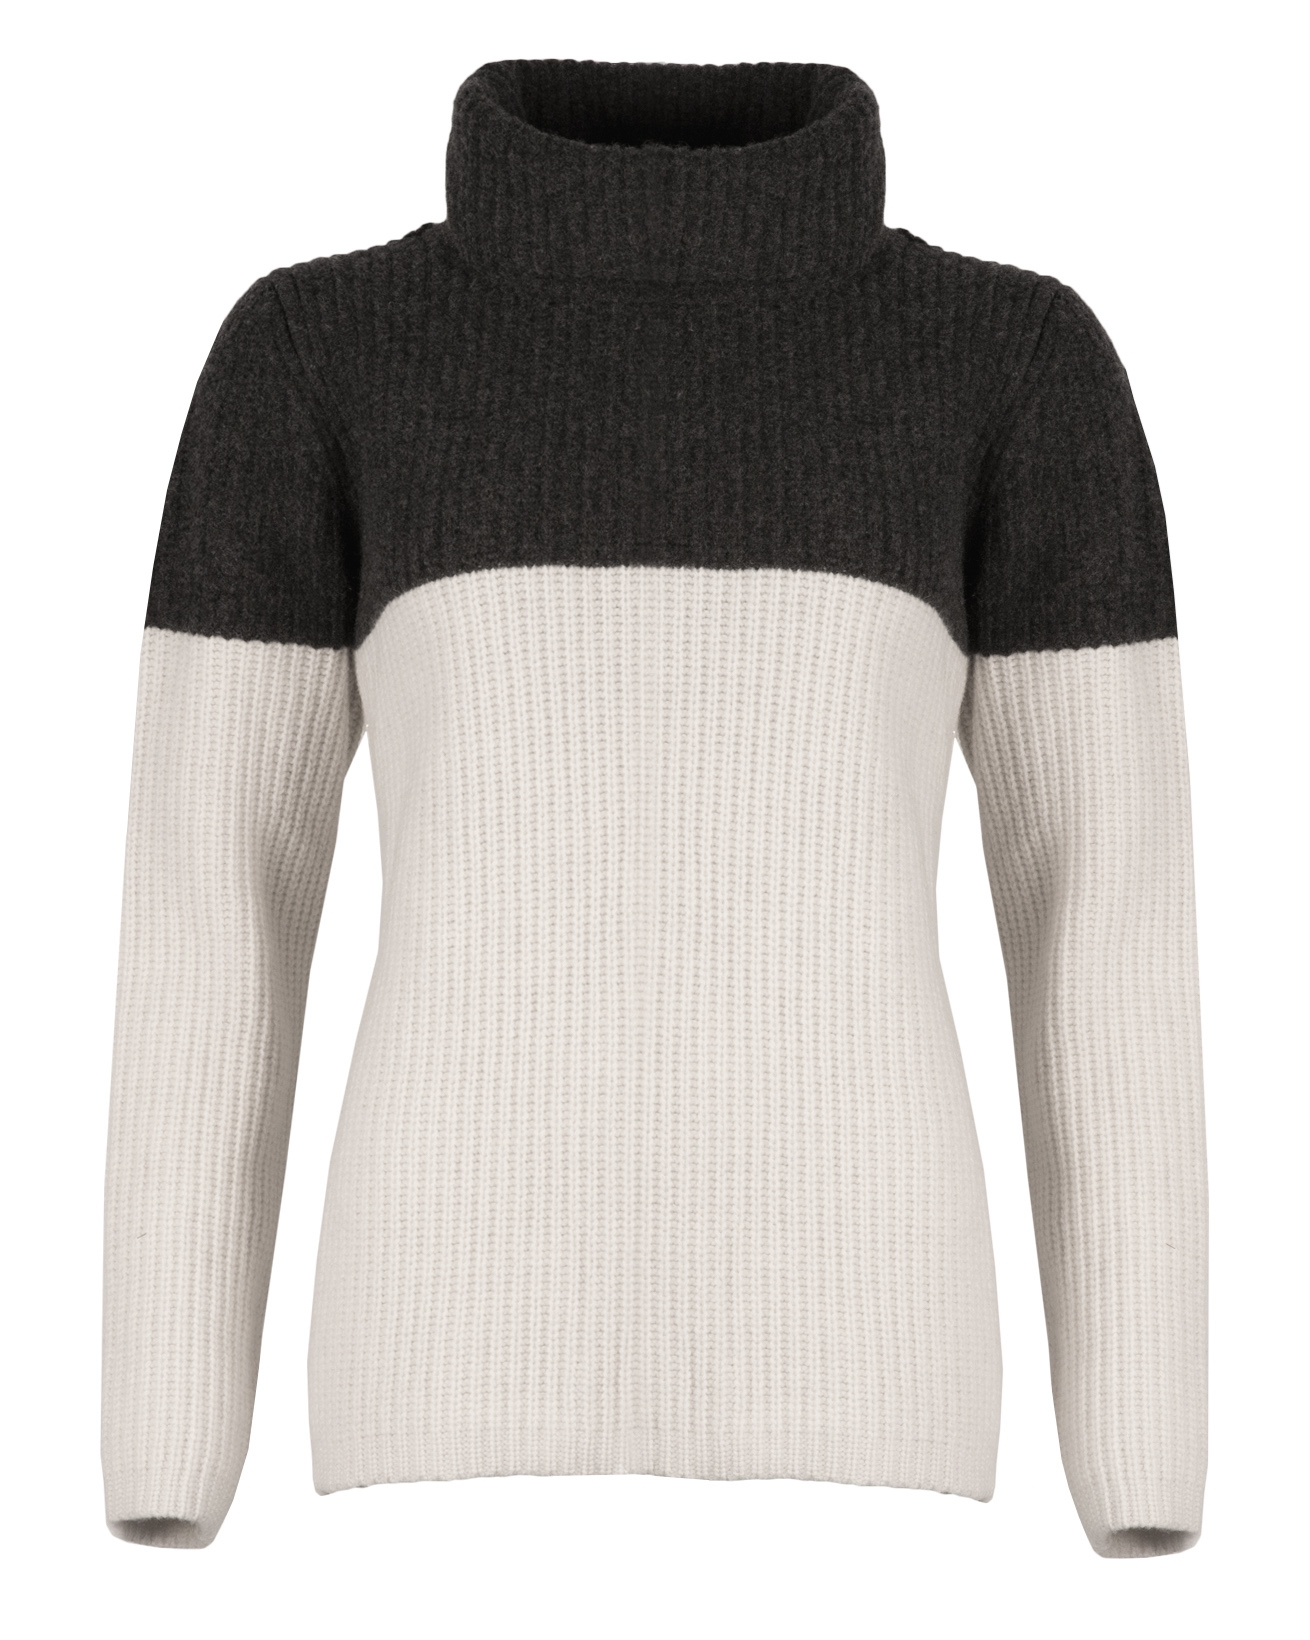 Colourblock Roll neck - Size Medium - Charcoal colourblock - 1567